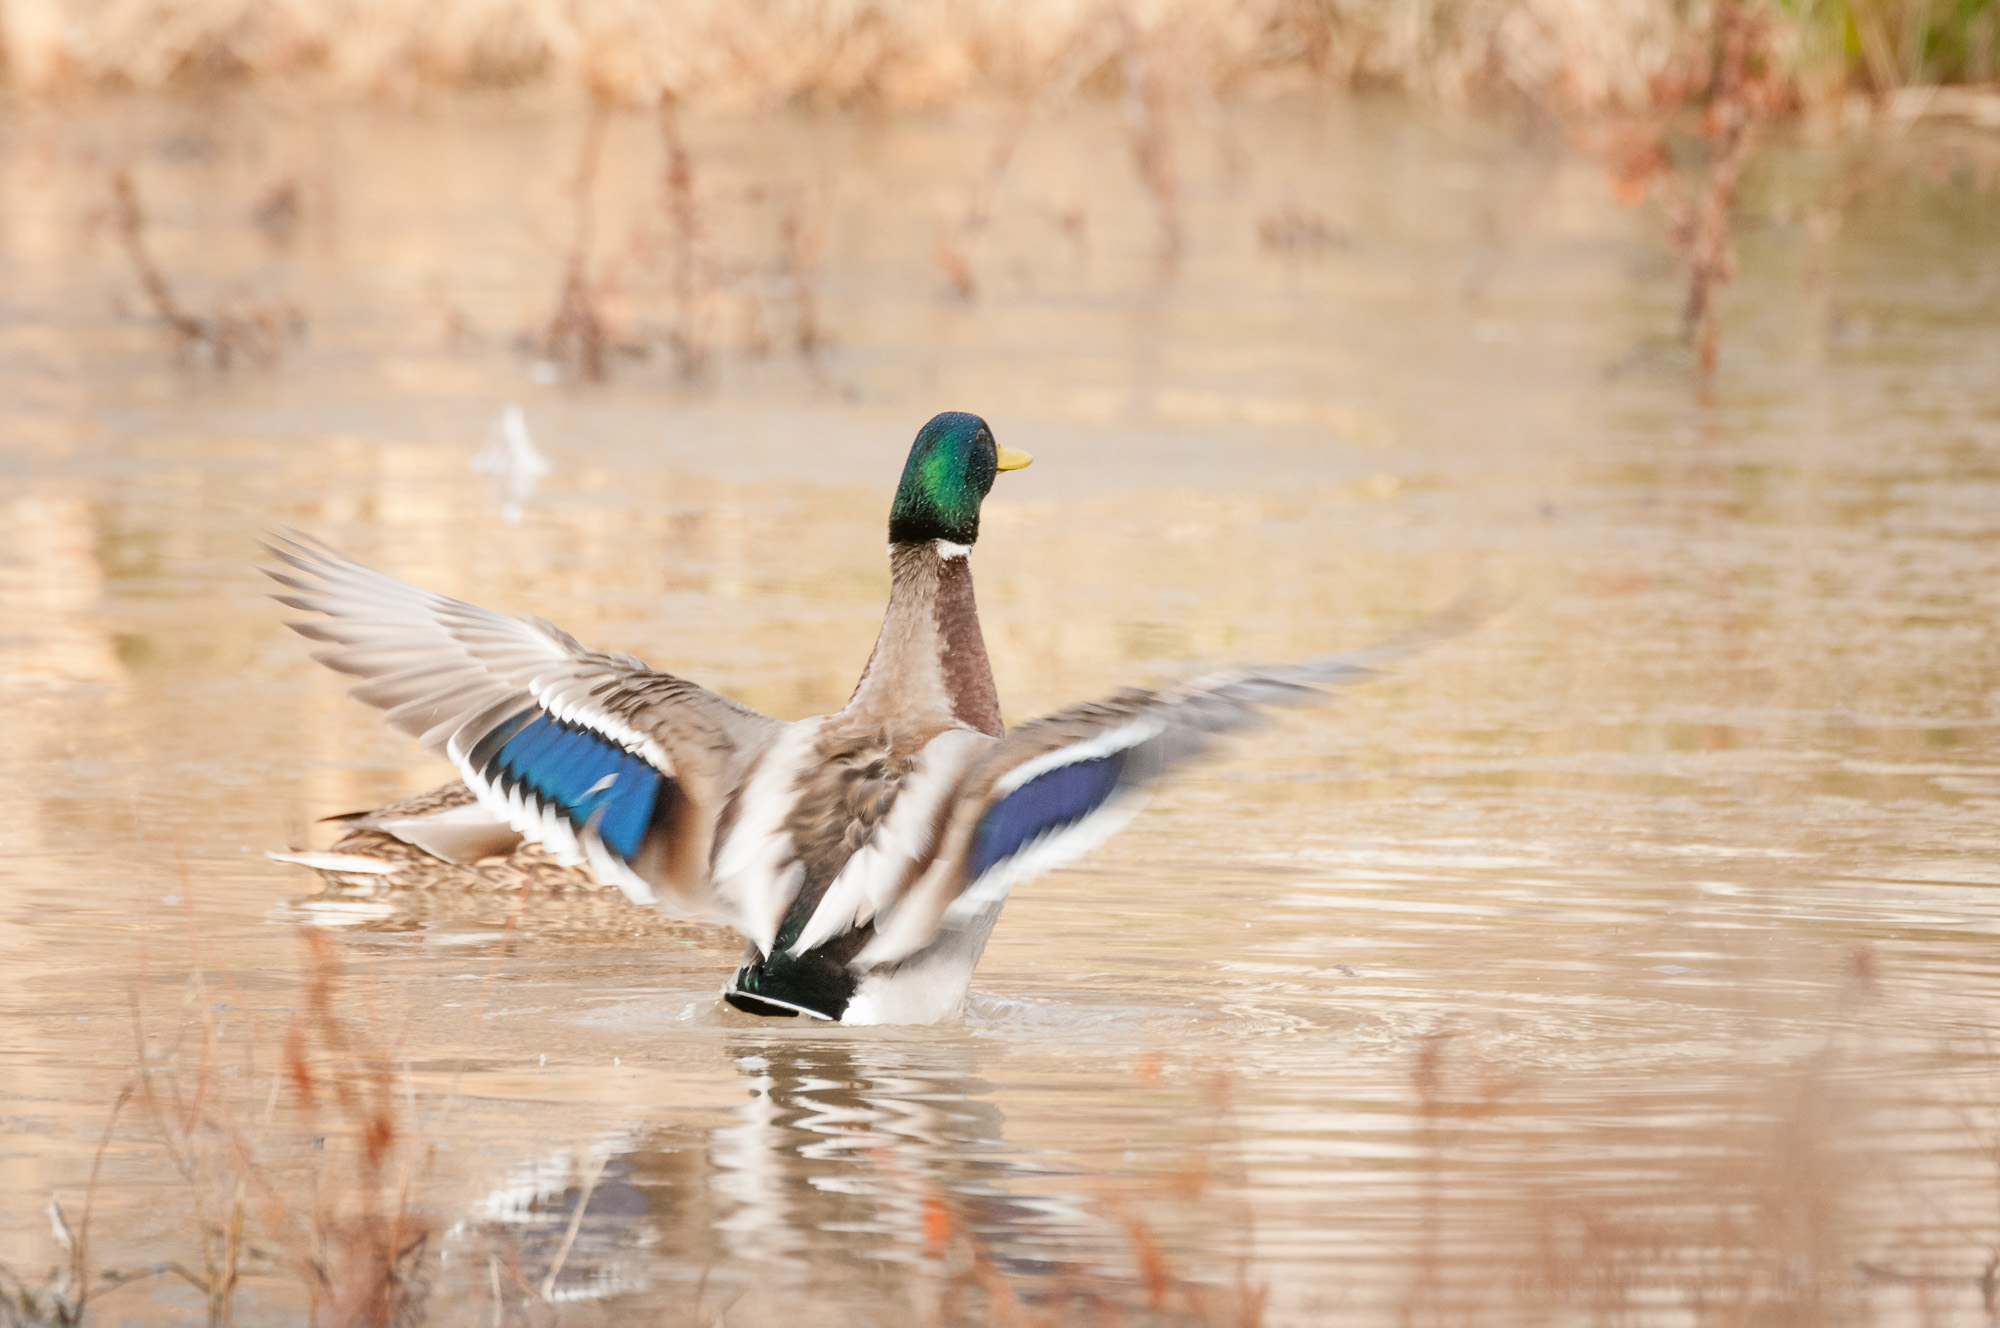 The backside of a displaying male mallard. This view lets you see their colorful wing stripes.